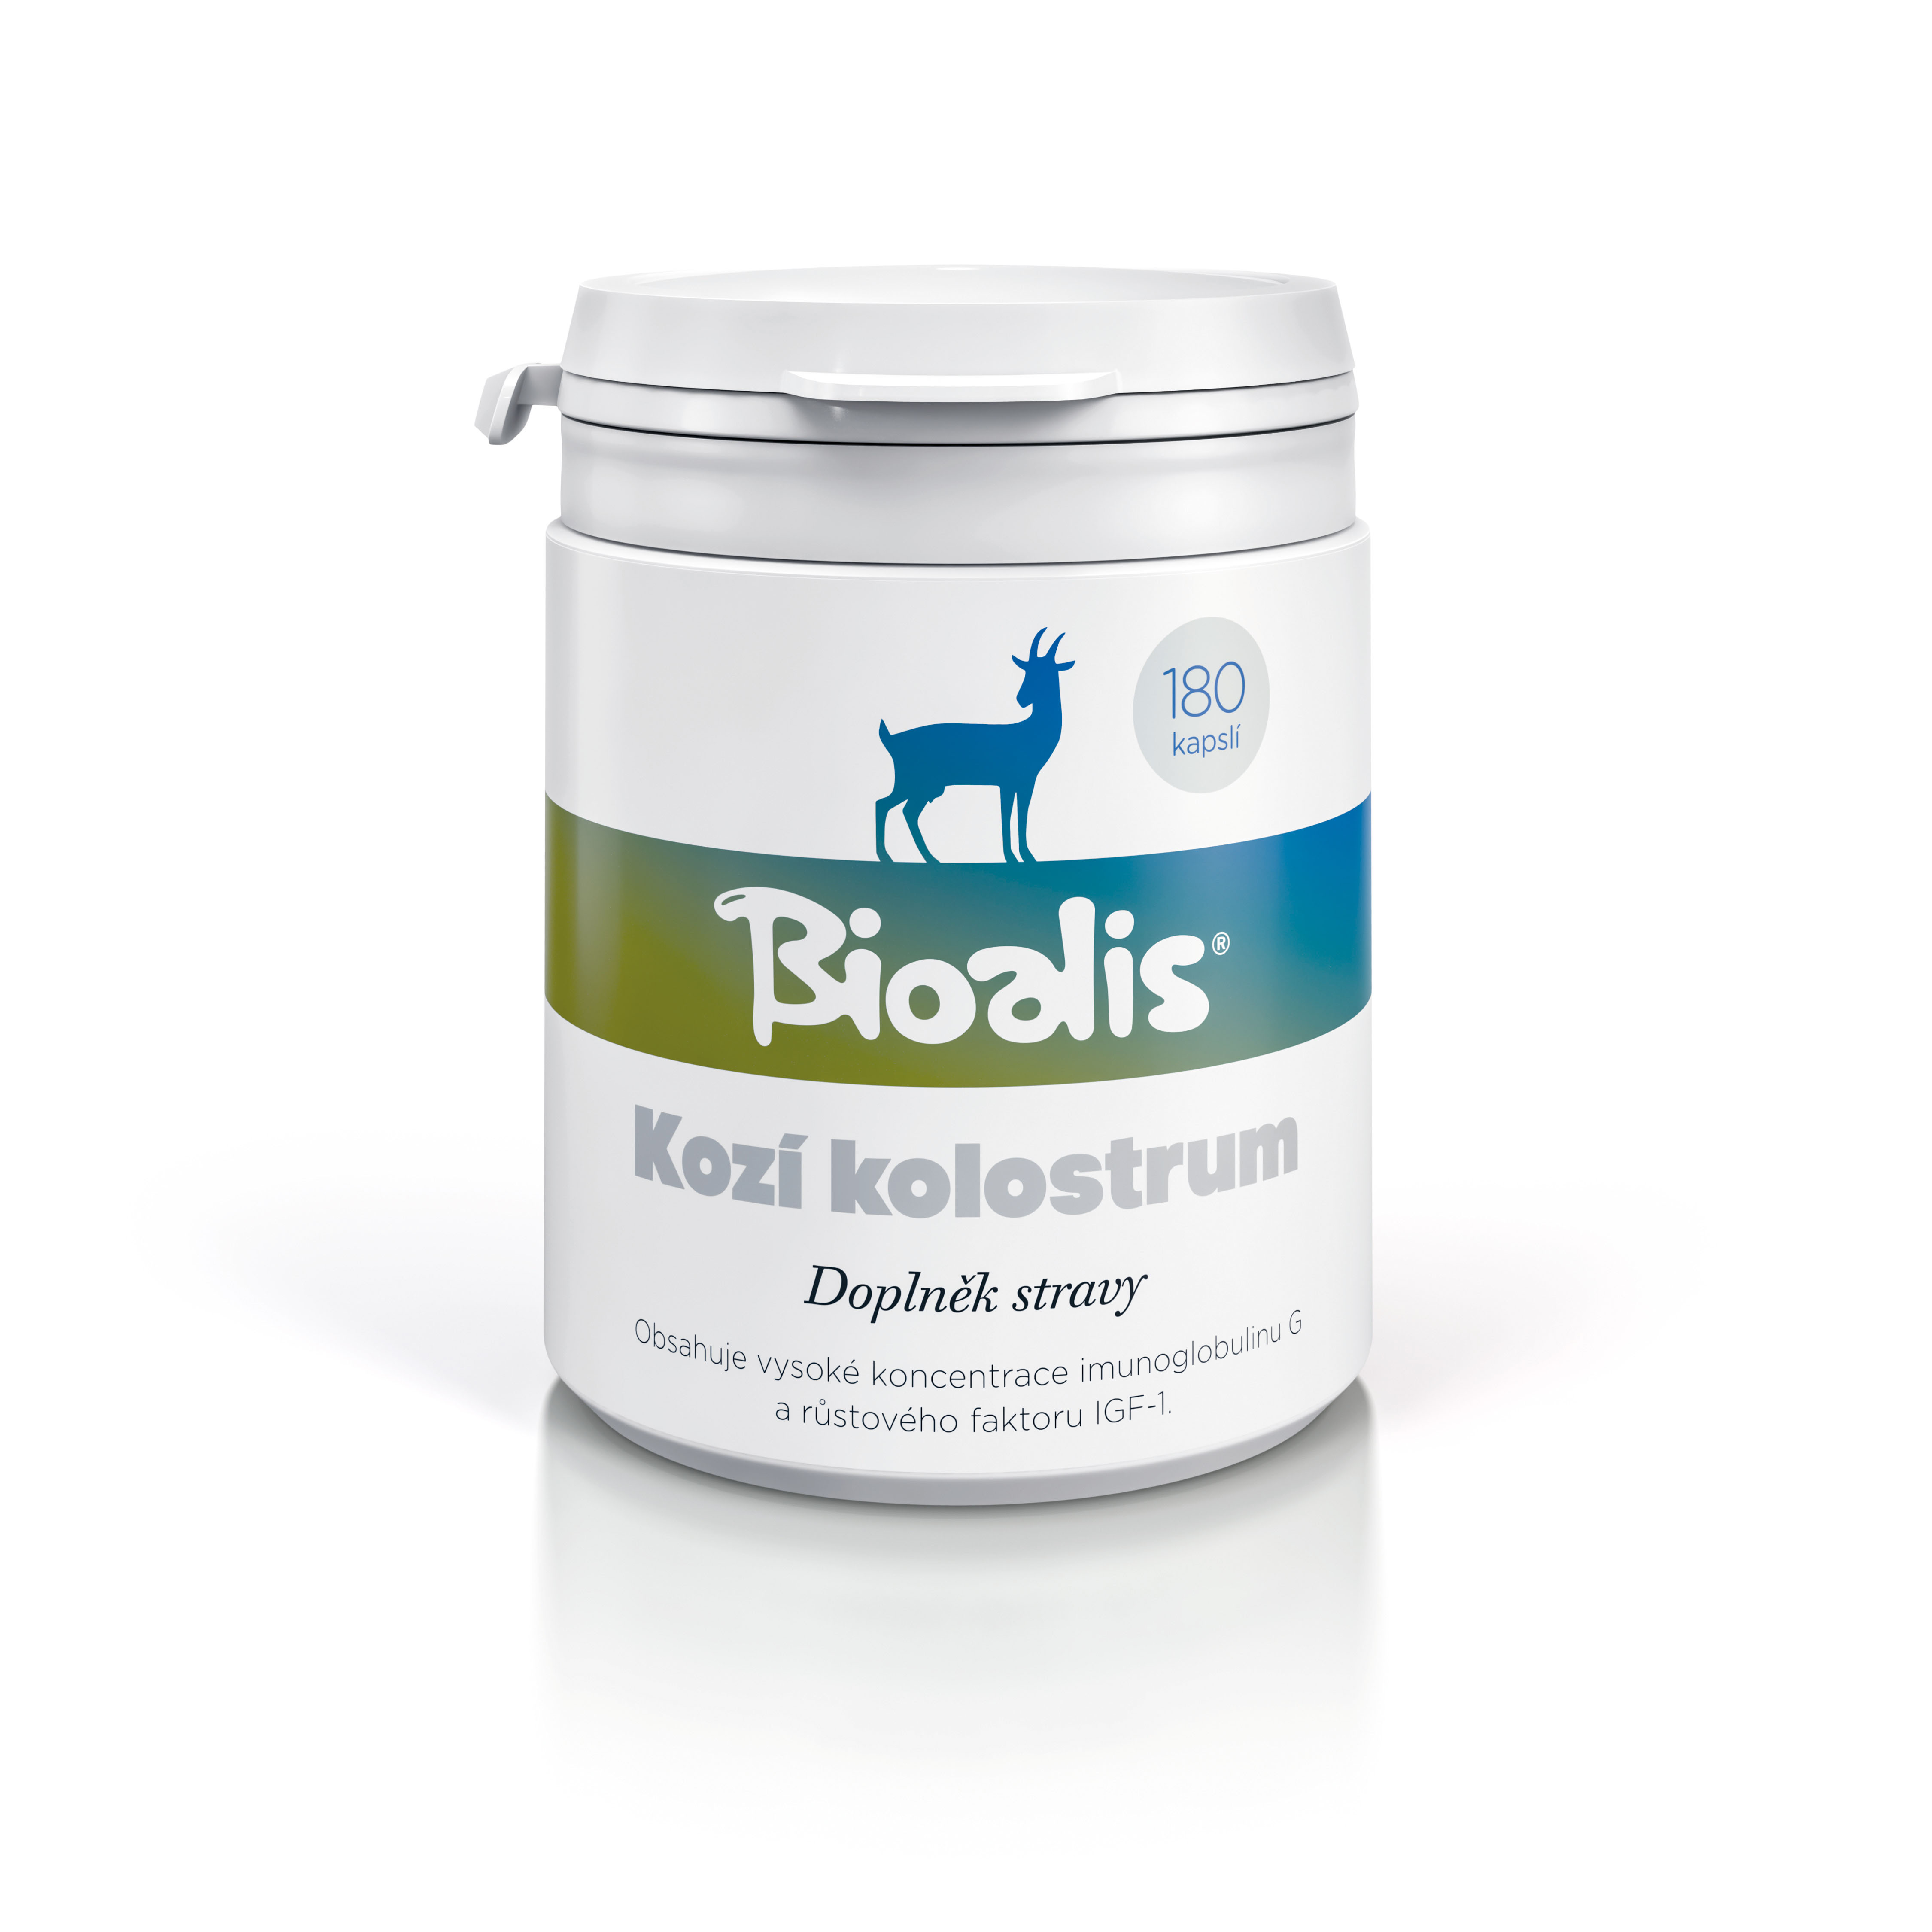 Kozí kolostrum Bioalis  | 180 tablet